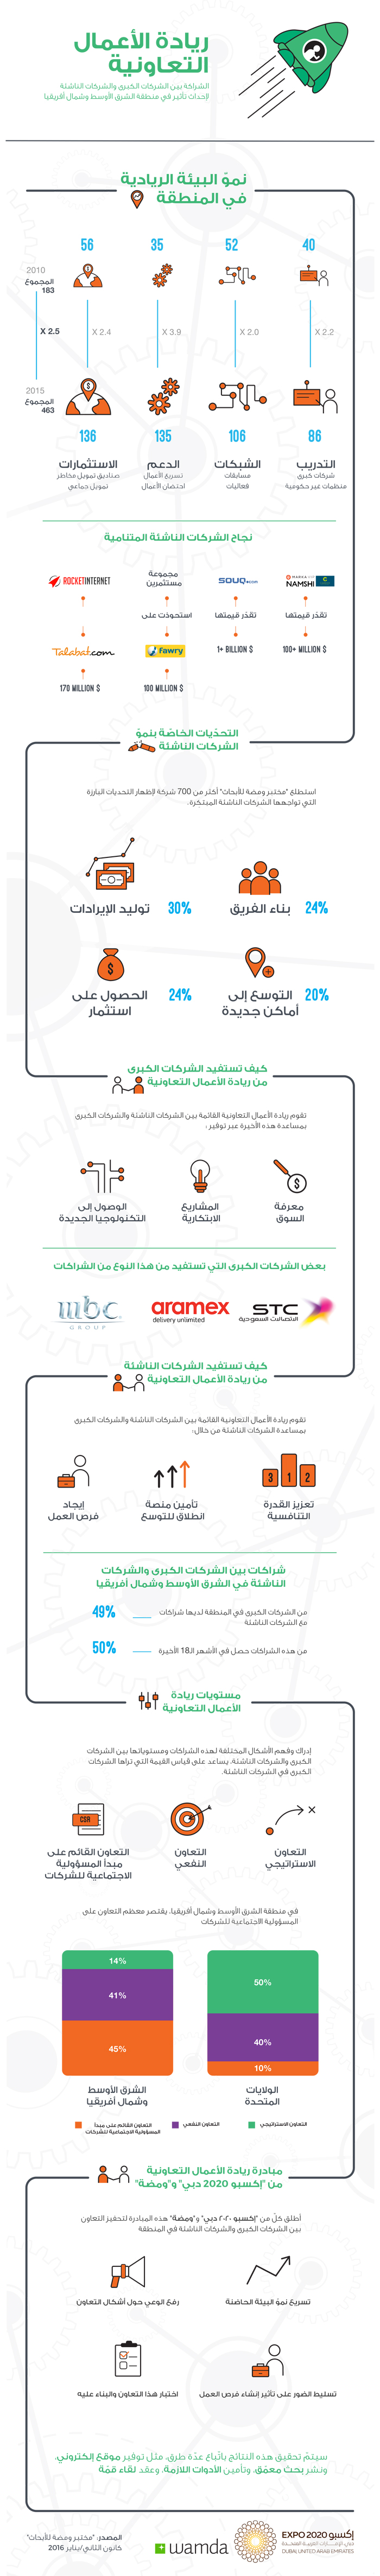 Collaborative Entrepreneurship Arabic